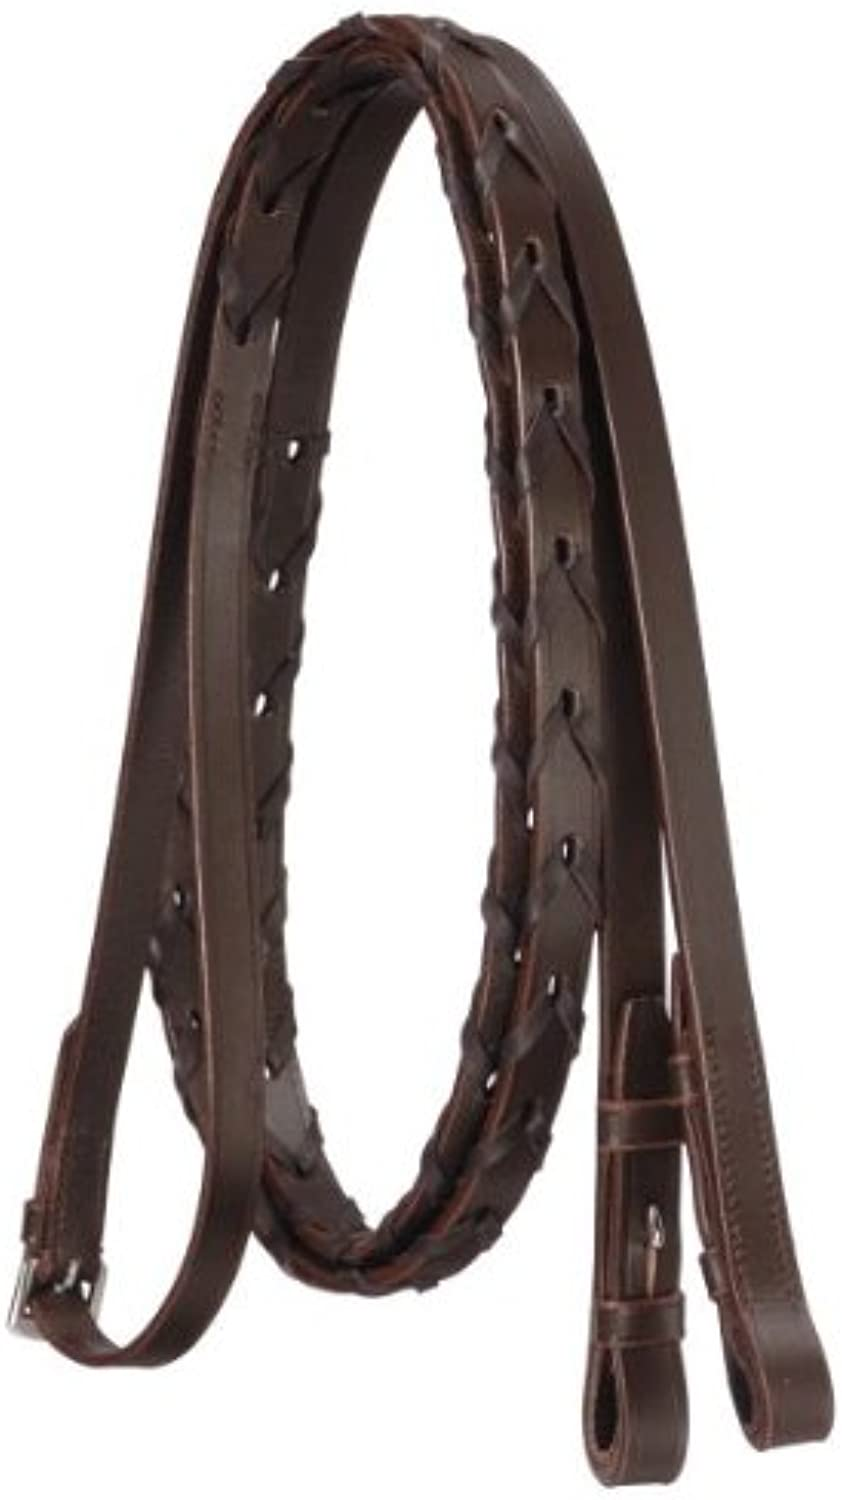 High Quality English Leather Laced Full Size Reins In Havana (brown), 5 8  Wide